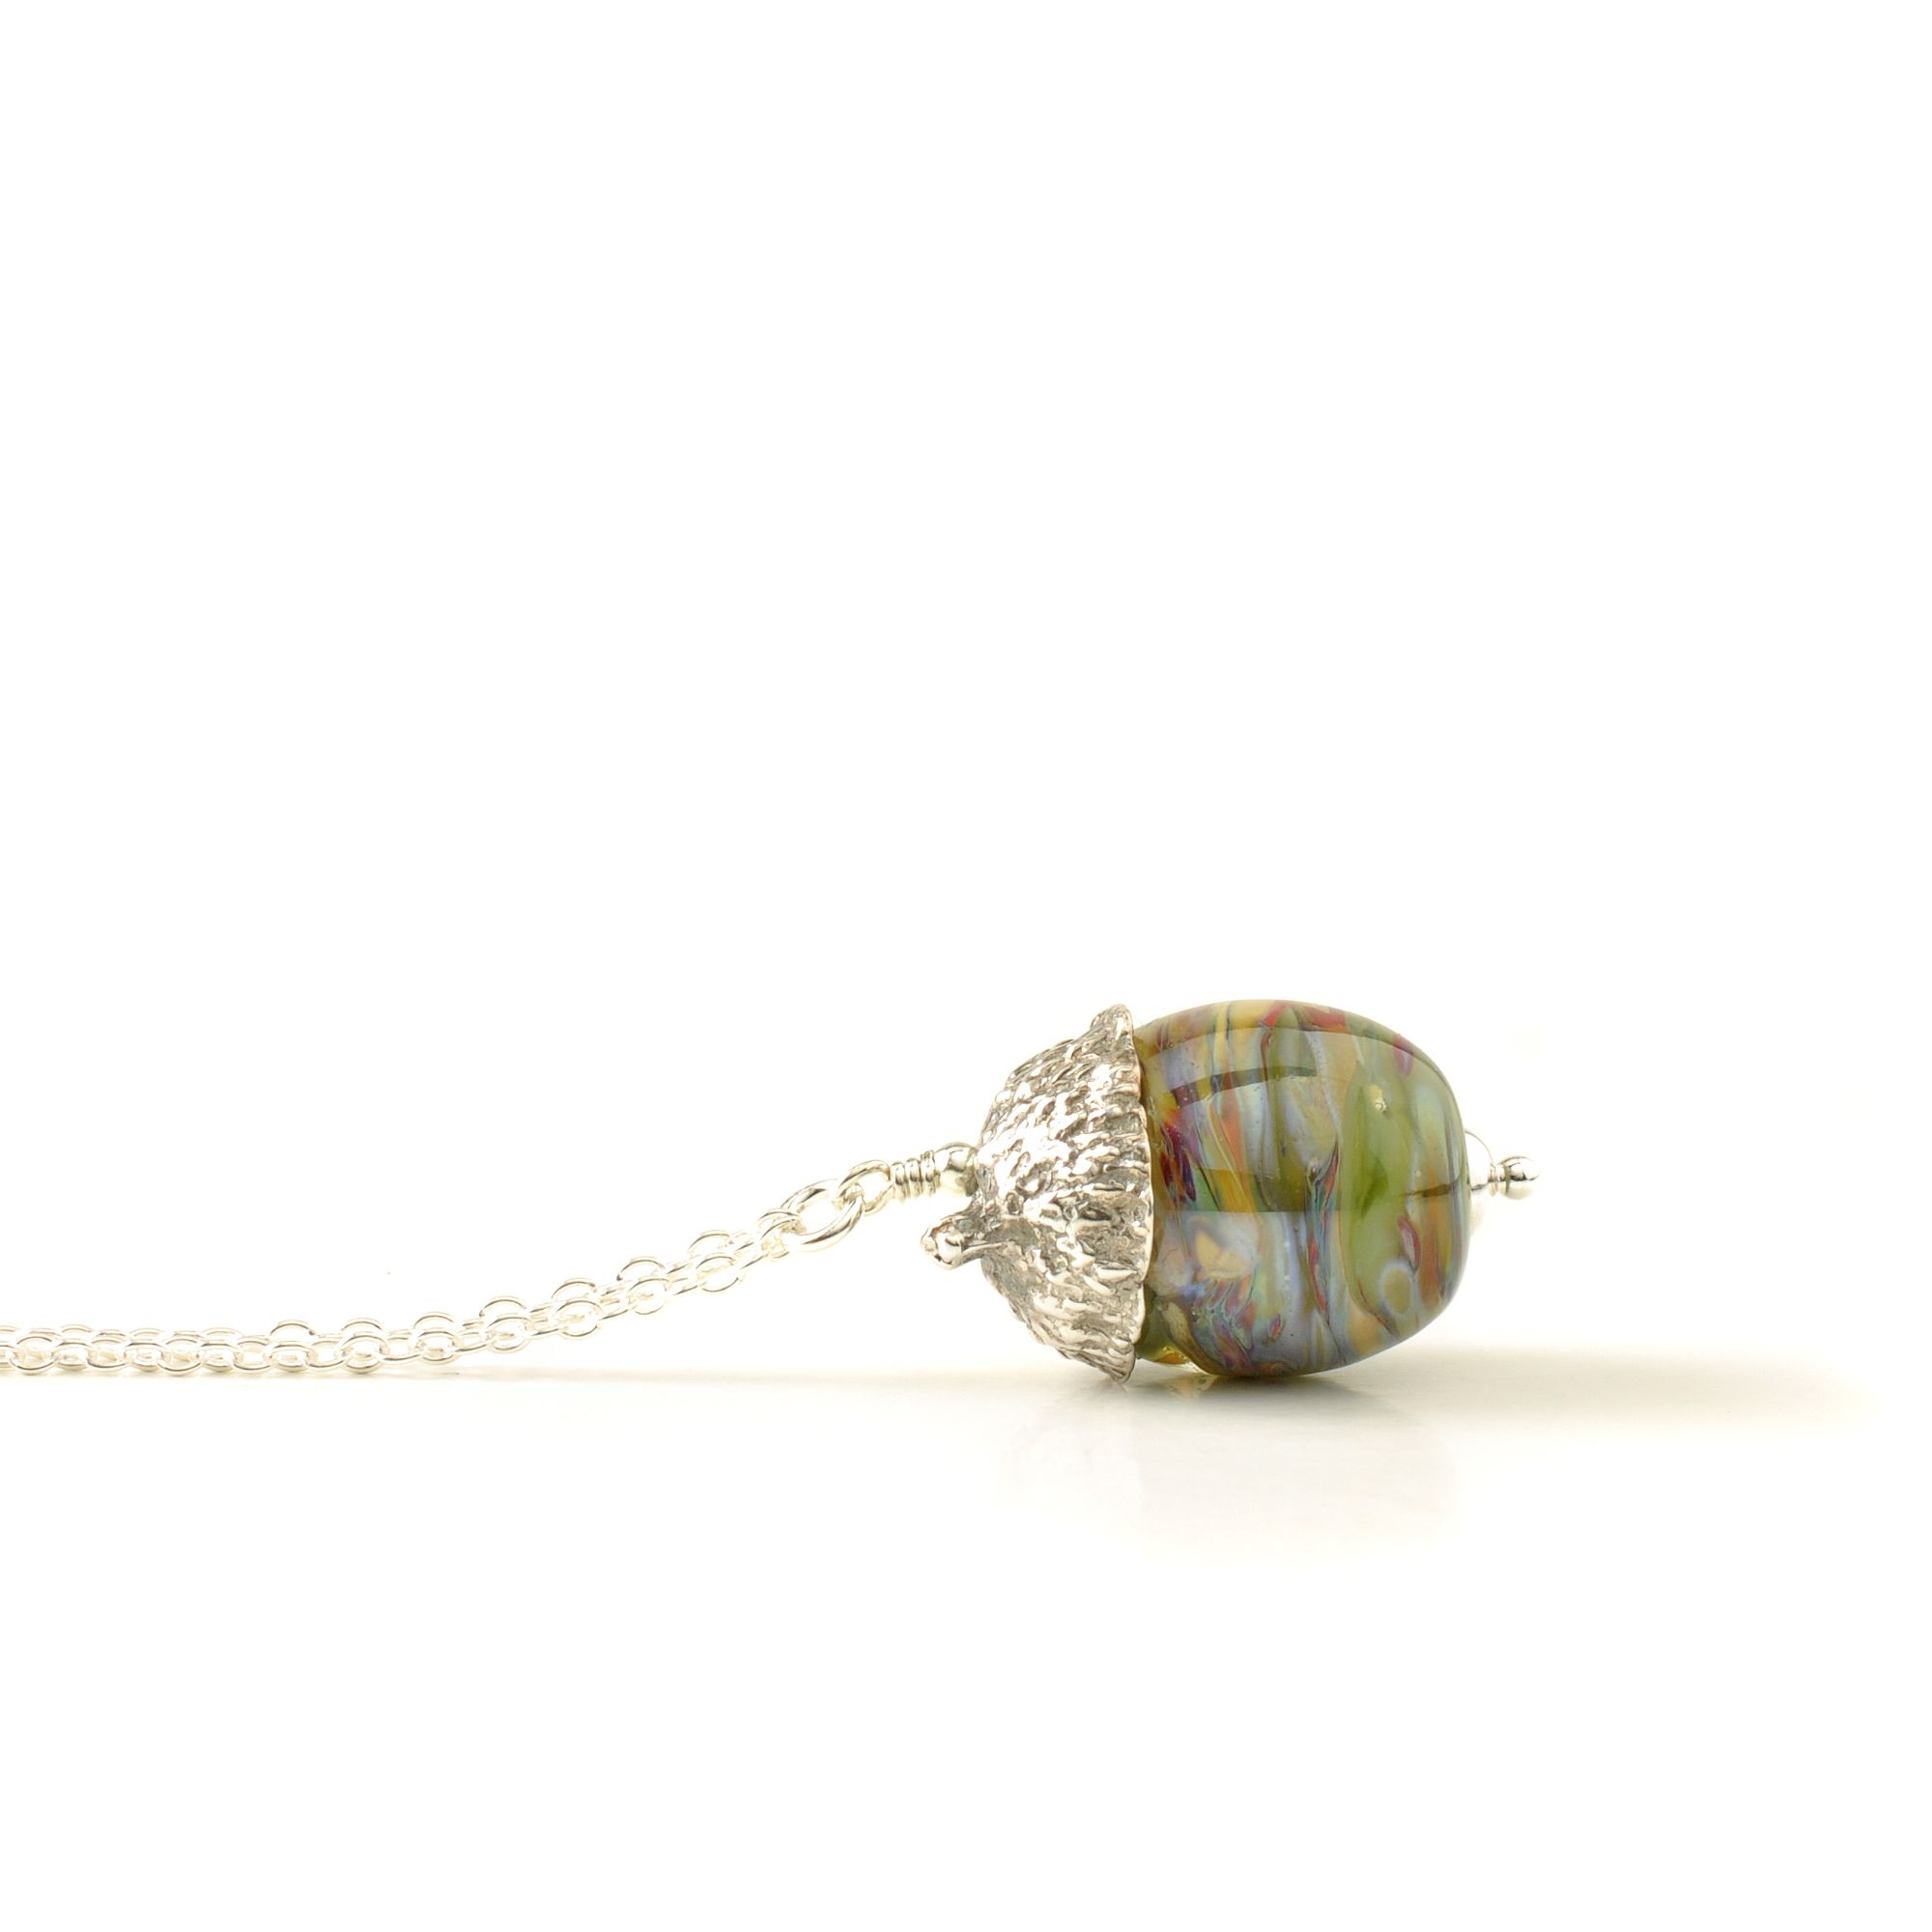 Handmade Glass and Silver Acorn Necklaces